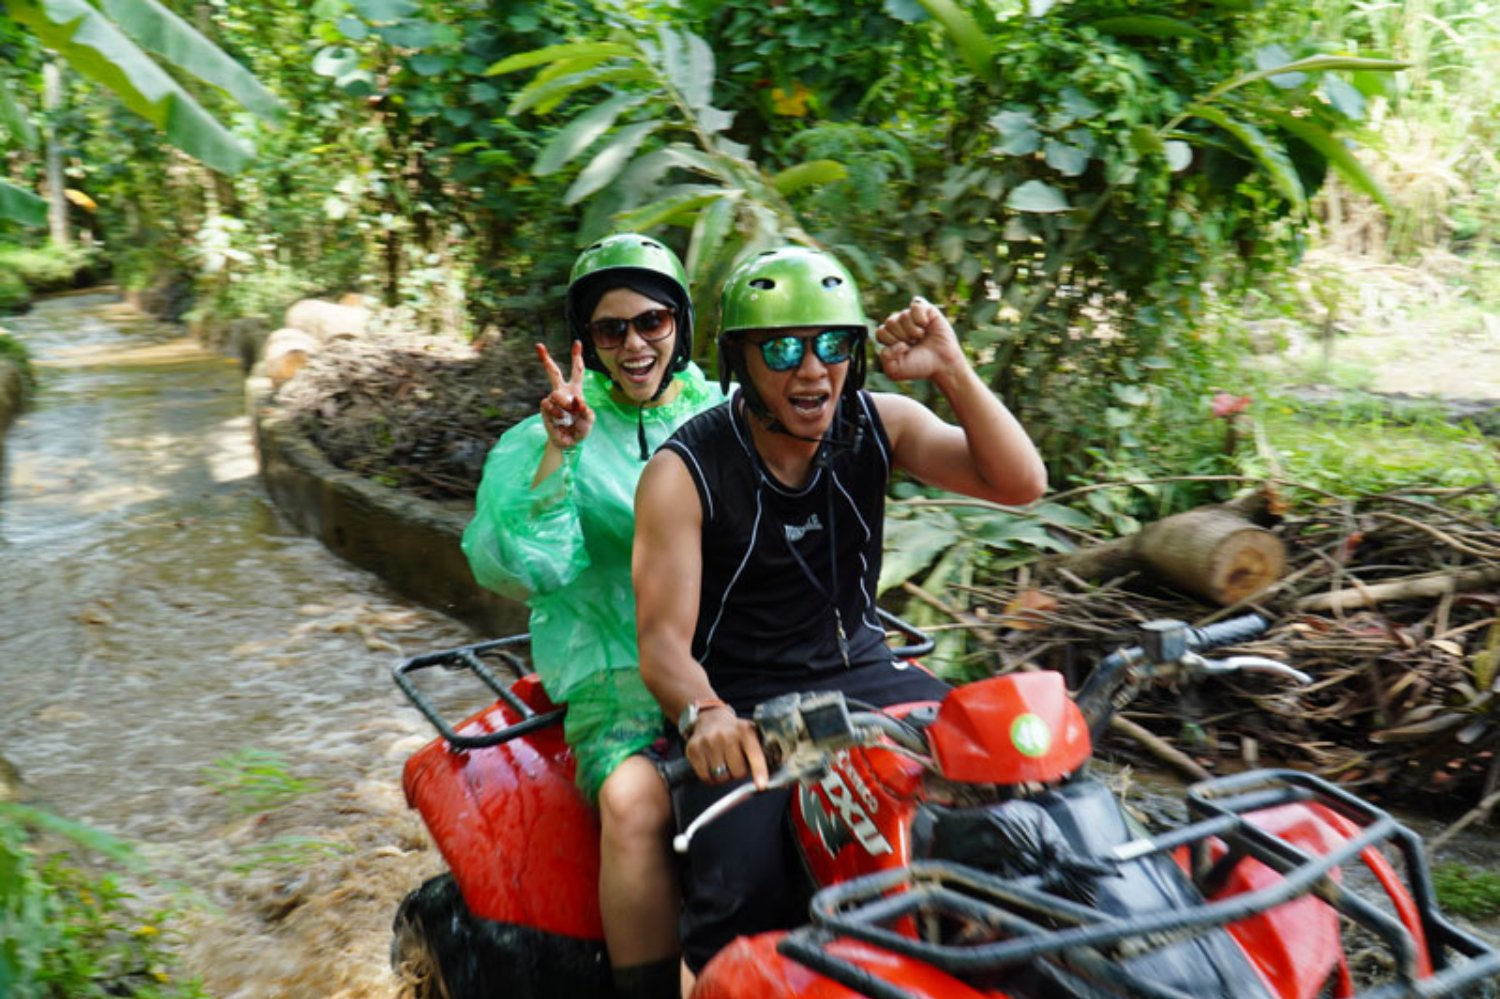 Green Forest in Atv Riding Adventure